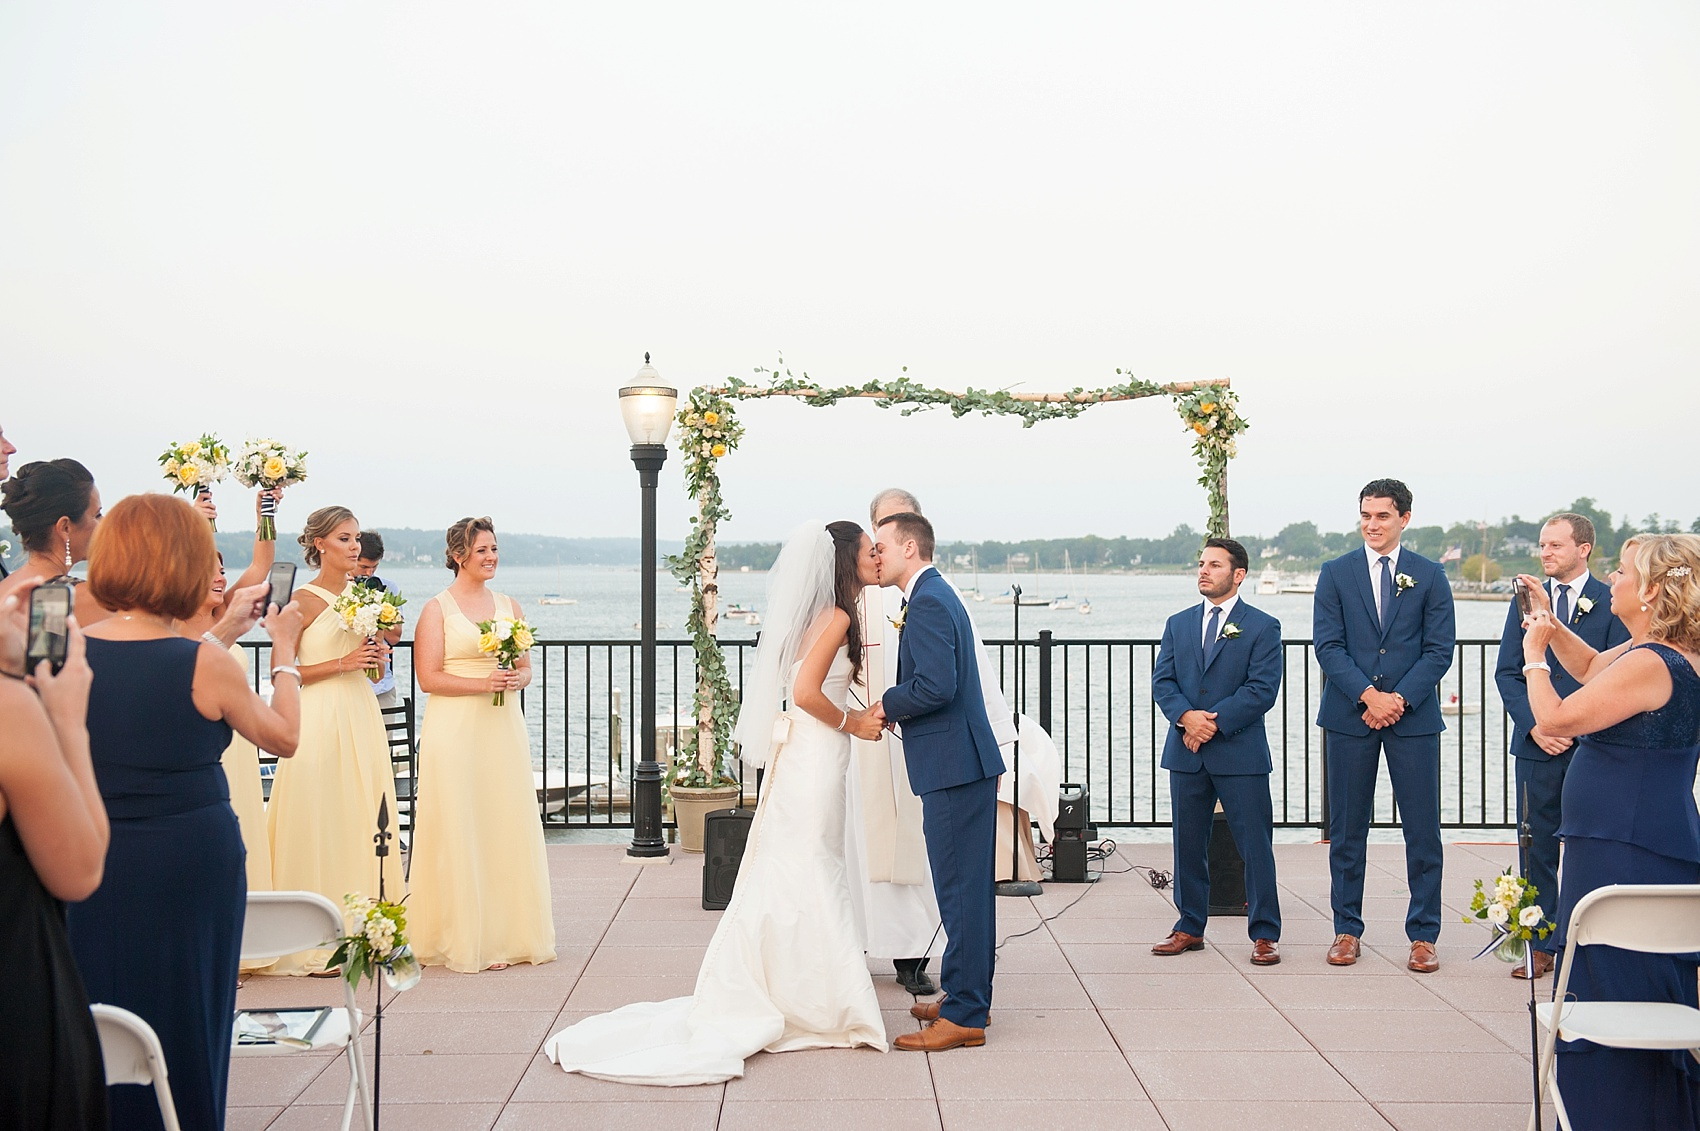 New Jersey waterfront wedding ceremony for a nautical day at the Molly Pitcher Inn. Photo by Mikkel Paige Photography.